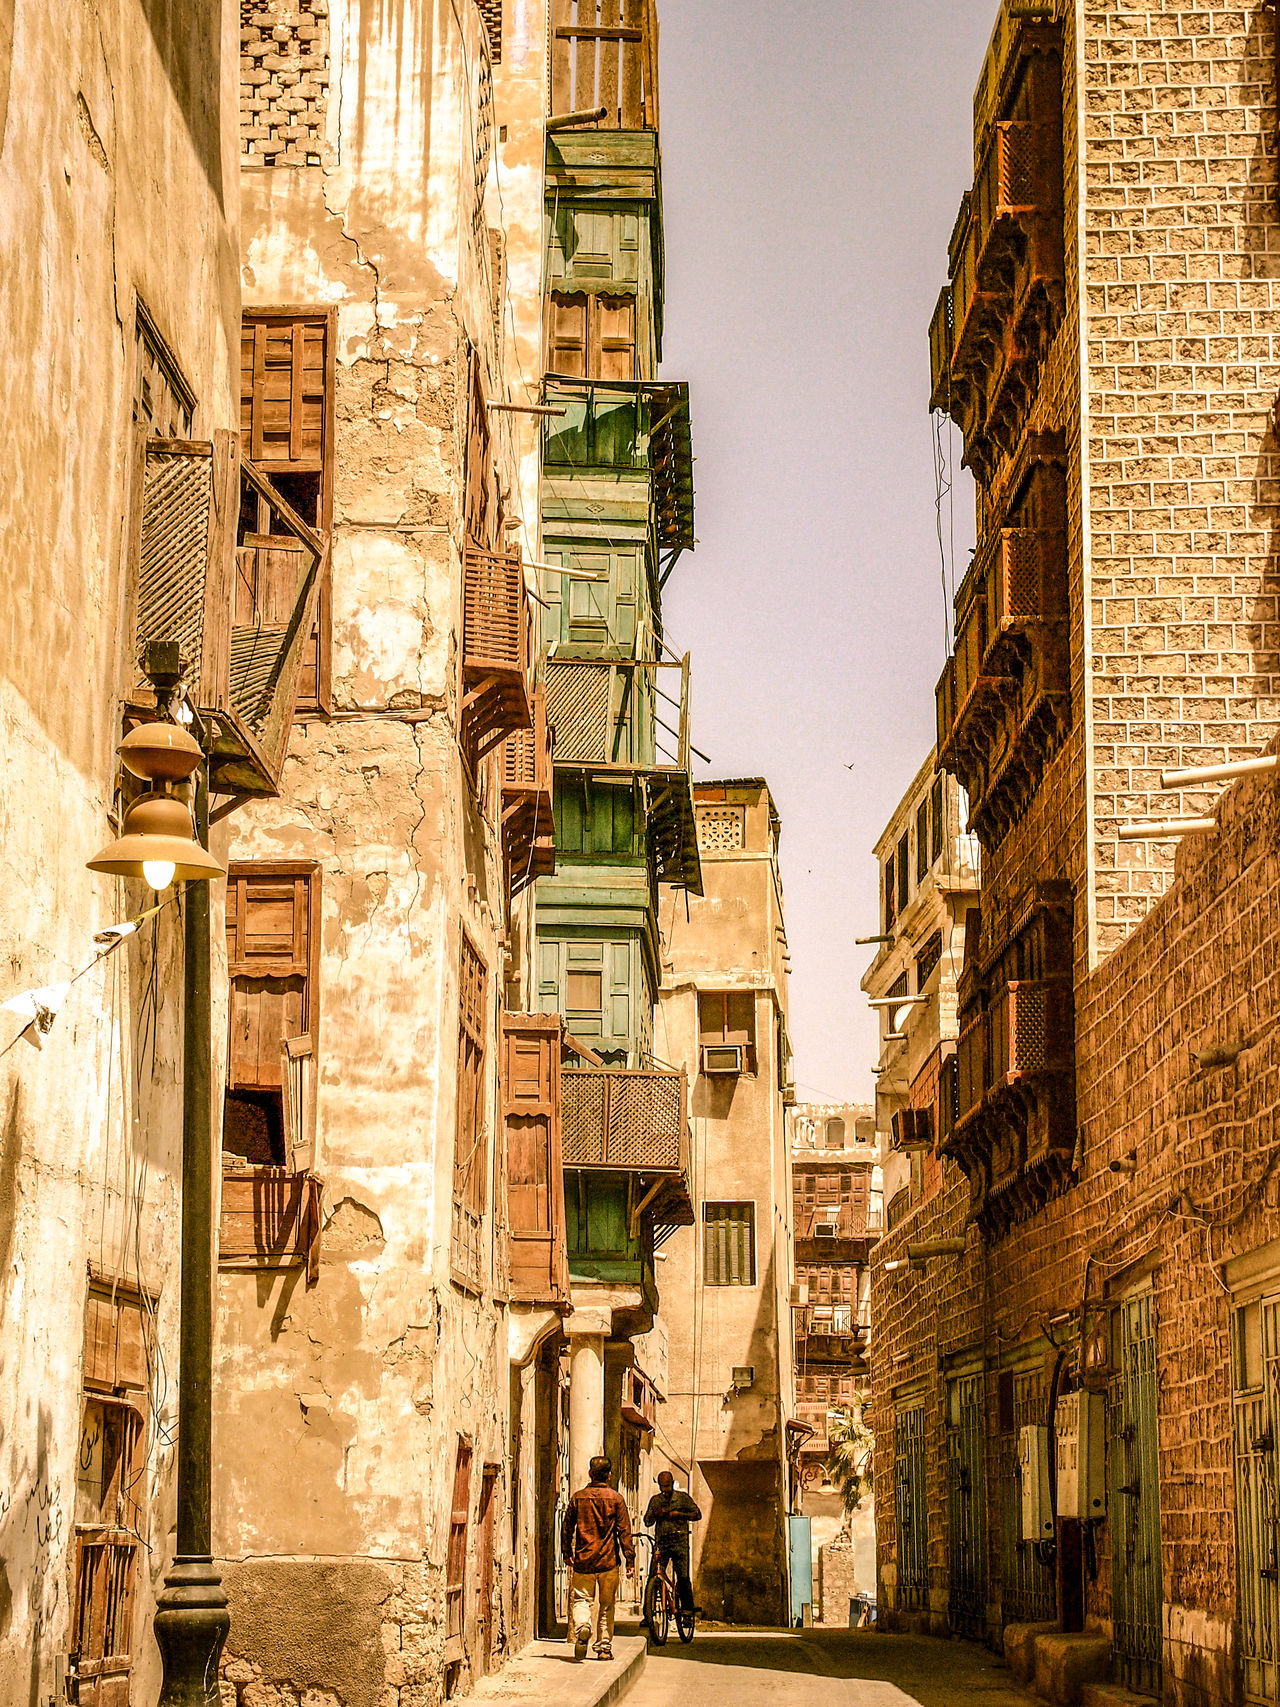 Arabic Arabic Architecture Arabic Style Architecture Balad Building Exterior City City Street Cityscape Cityscapes EyeEm City Shots Historical Building Jeddah Jeddah City Old But Awesome Old Jeddah Old Town Ruins Saudi Arabia Simple Beauty Street Photography Streetphotography Urban Exploration Urban Landscape